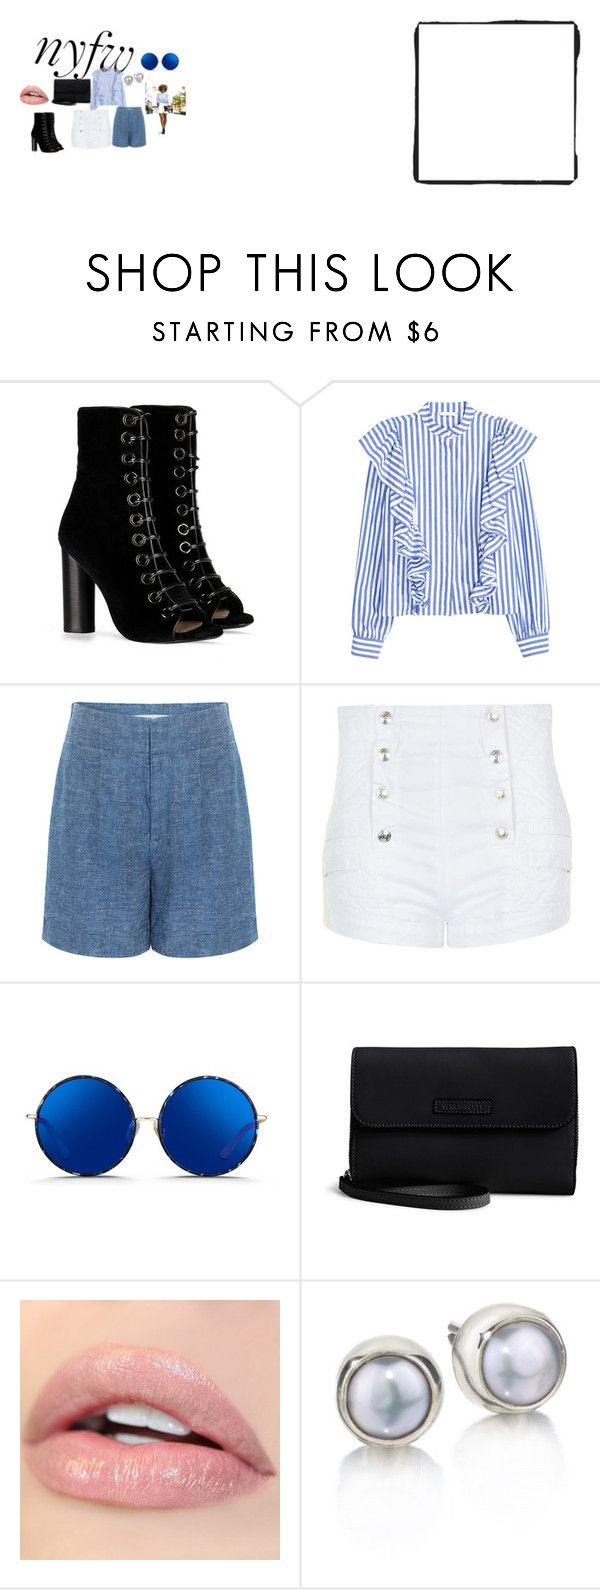 """Rocking the Sidewalk"" by pkgabriel on Polyvore featuring Barbara Bui, 10 Crosby Derek Lam, Pierre Balmain, Matthew Williamson, Vera Bradley, StreetStyle and NYFW"